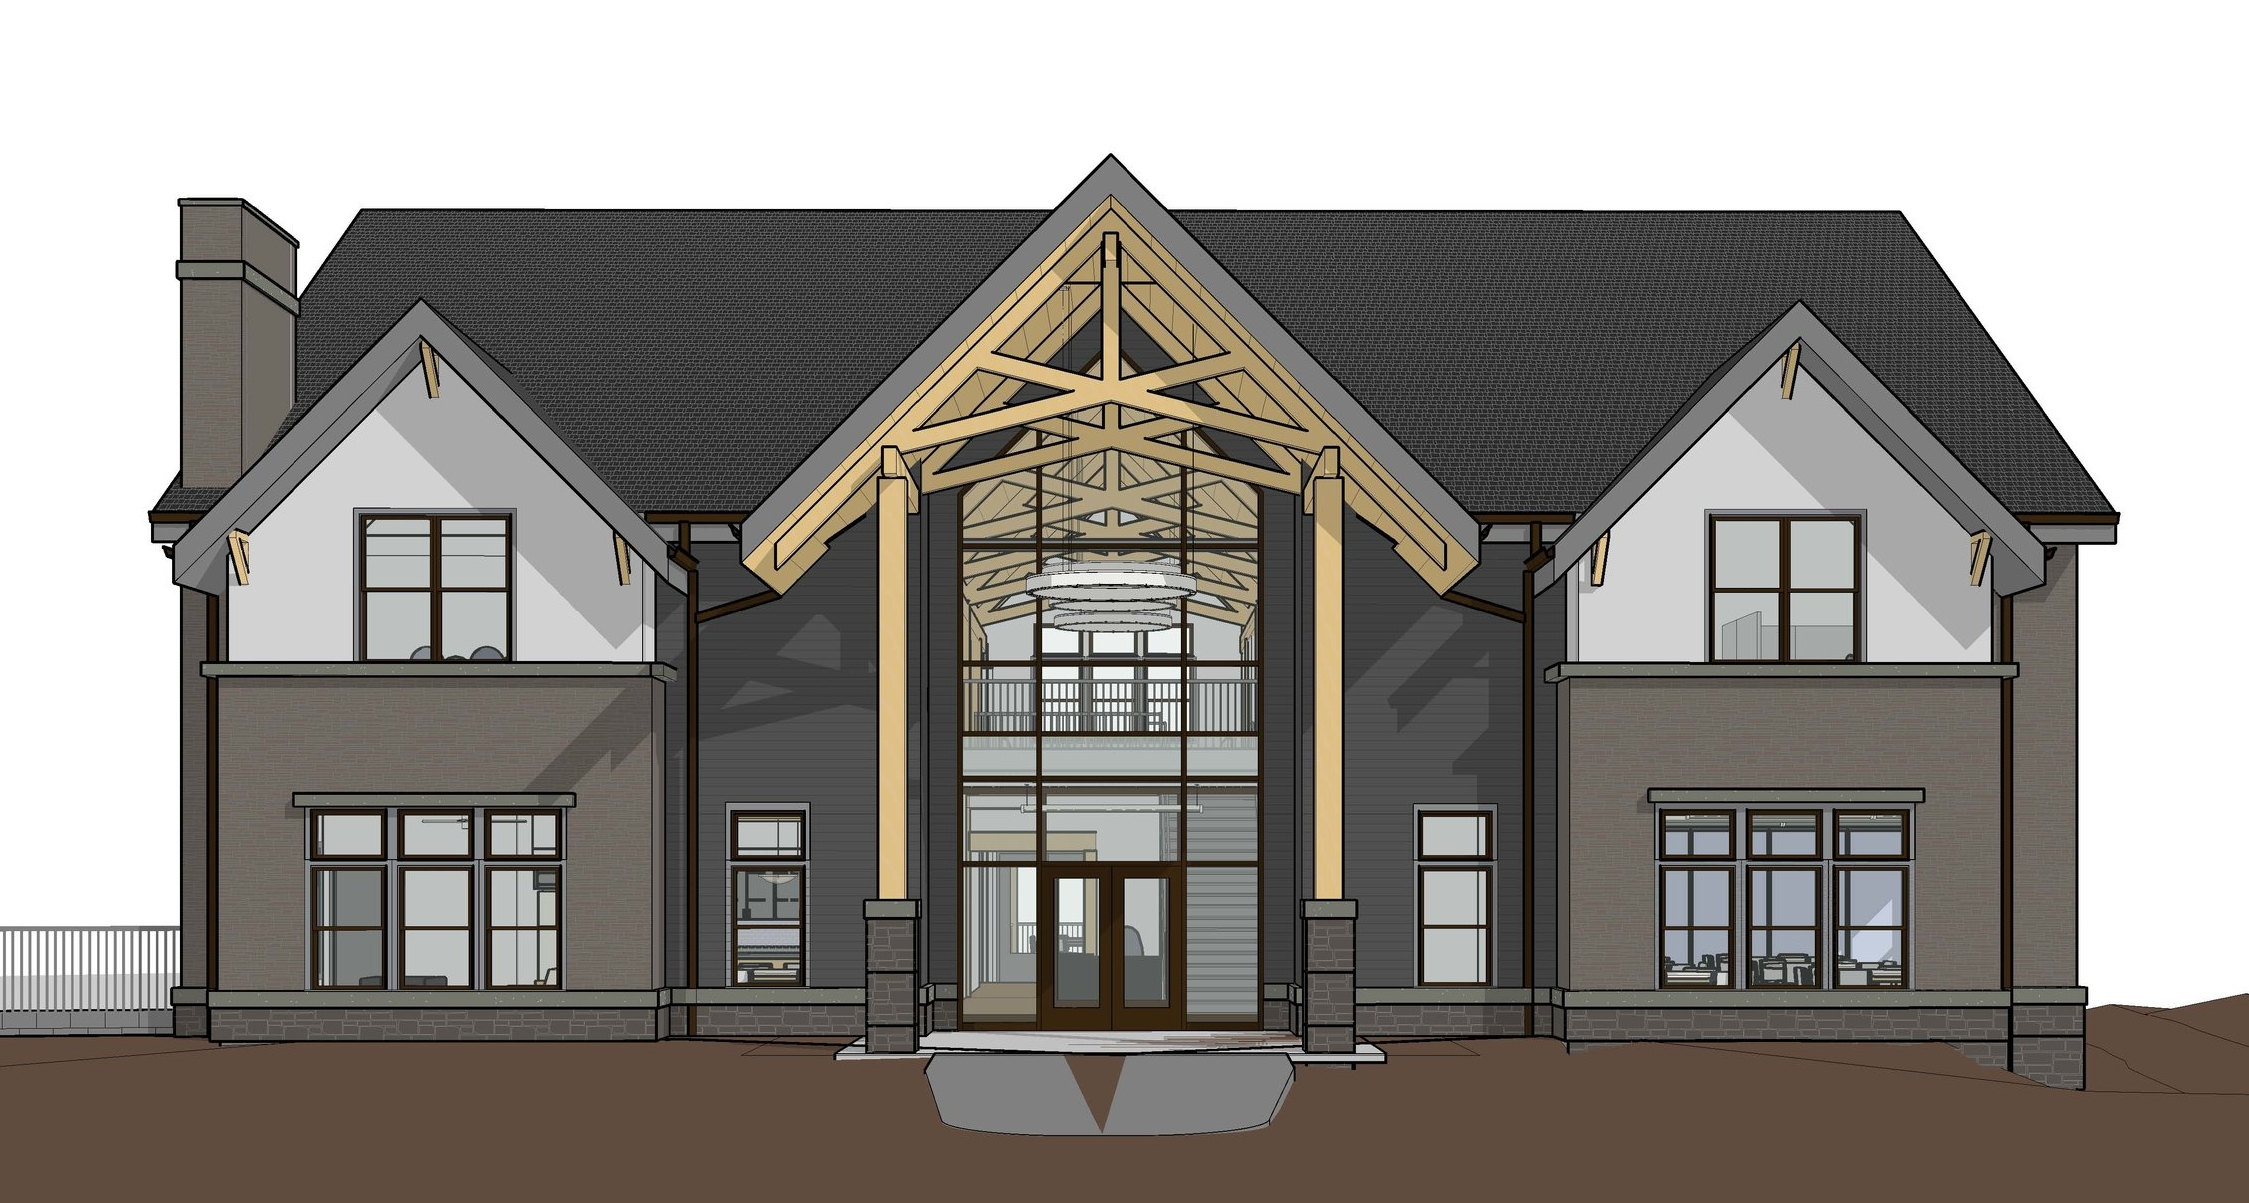 Rendering of the new Waterford Crossing Clubhouse exterior